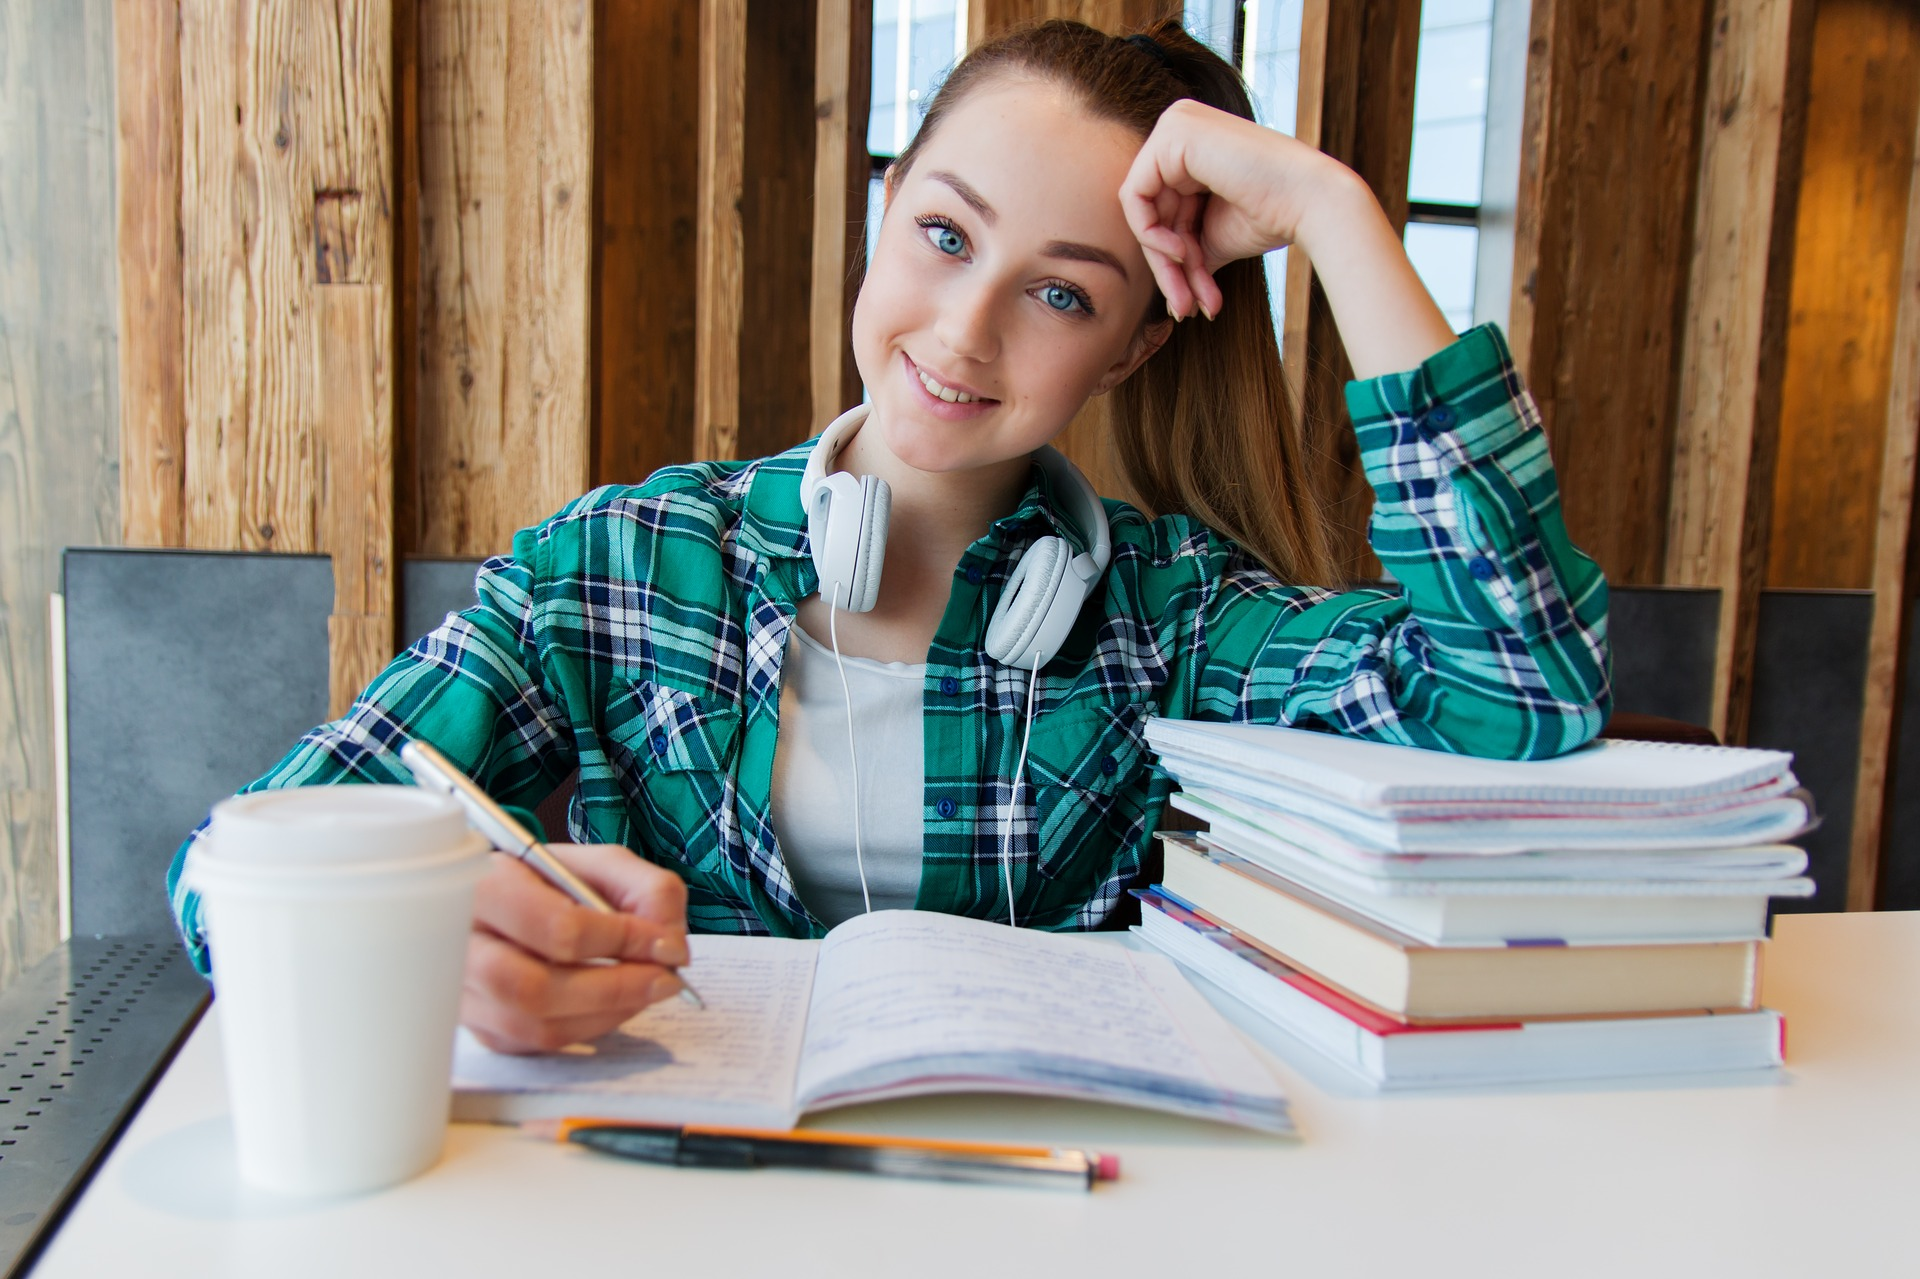 Girl student studying with headphones a notebook and coffee